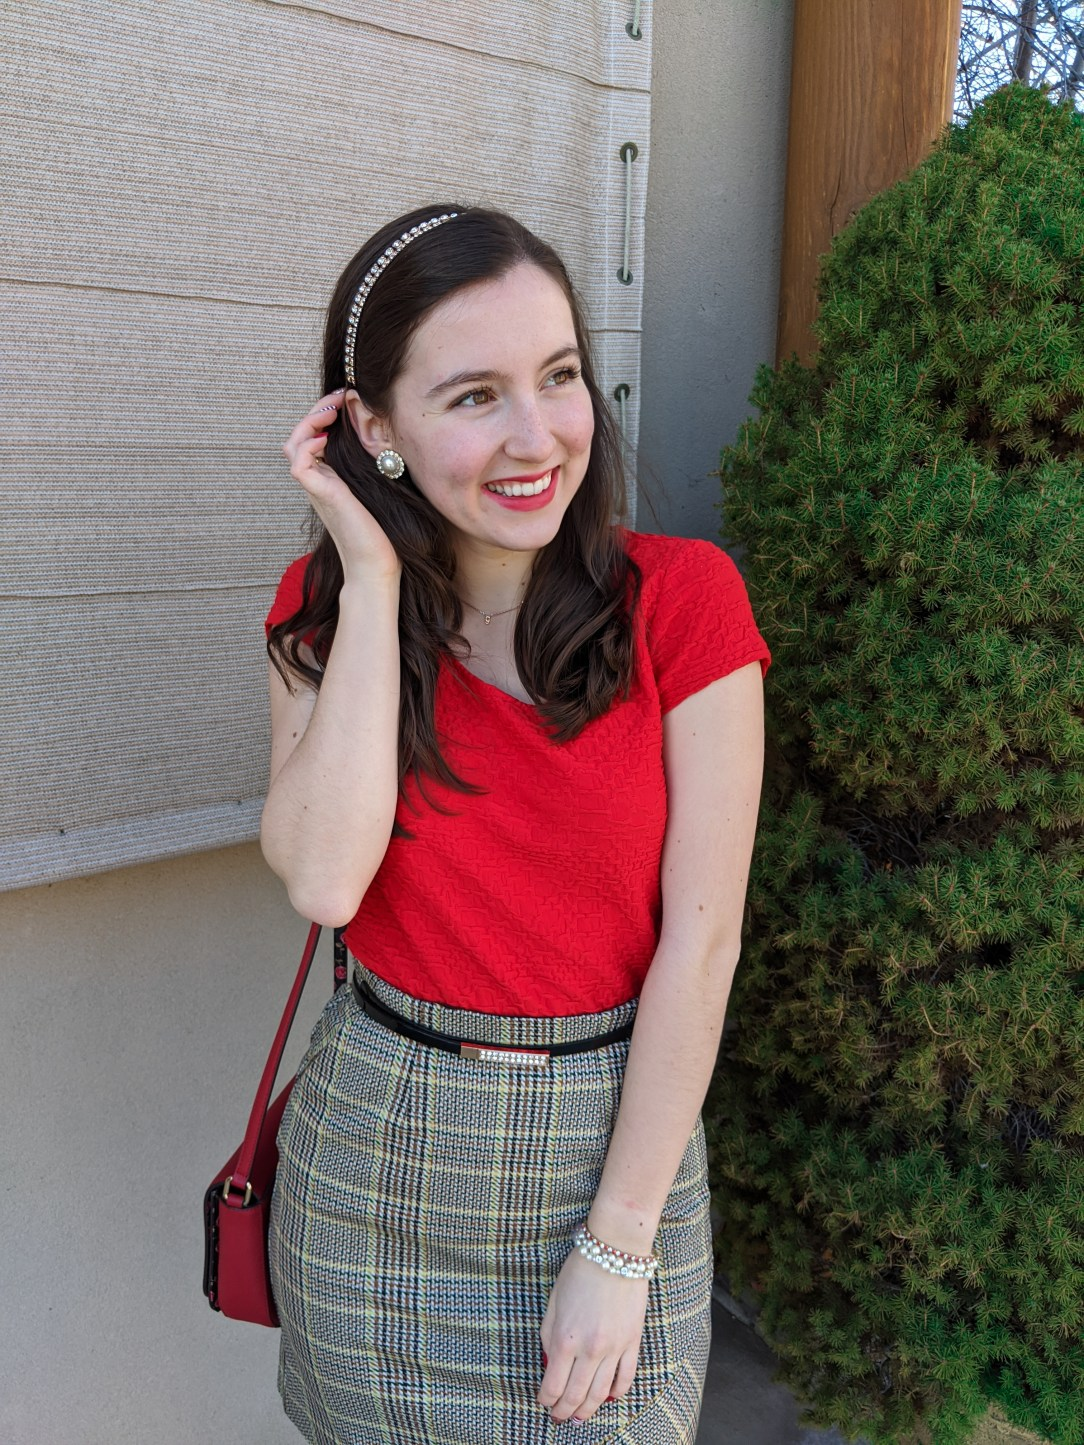 red blouse, plaid skirt, sparkly accessories